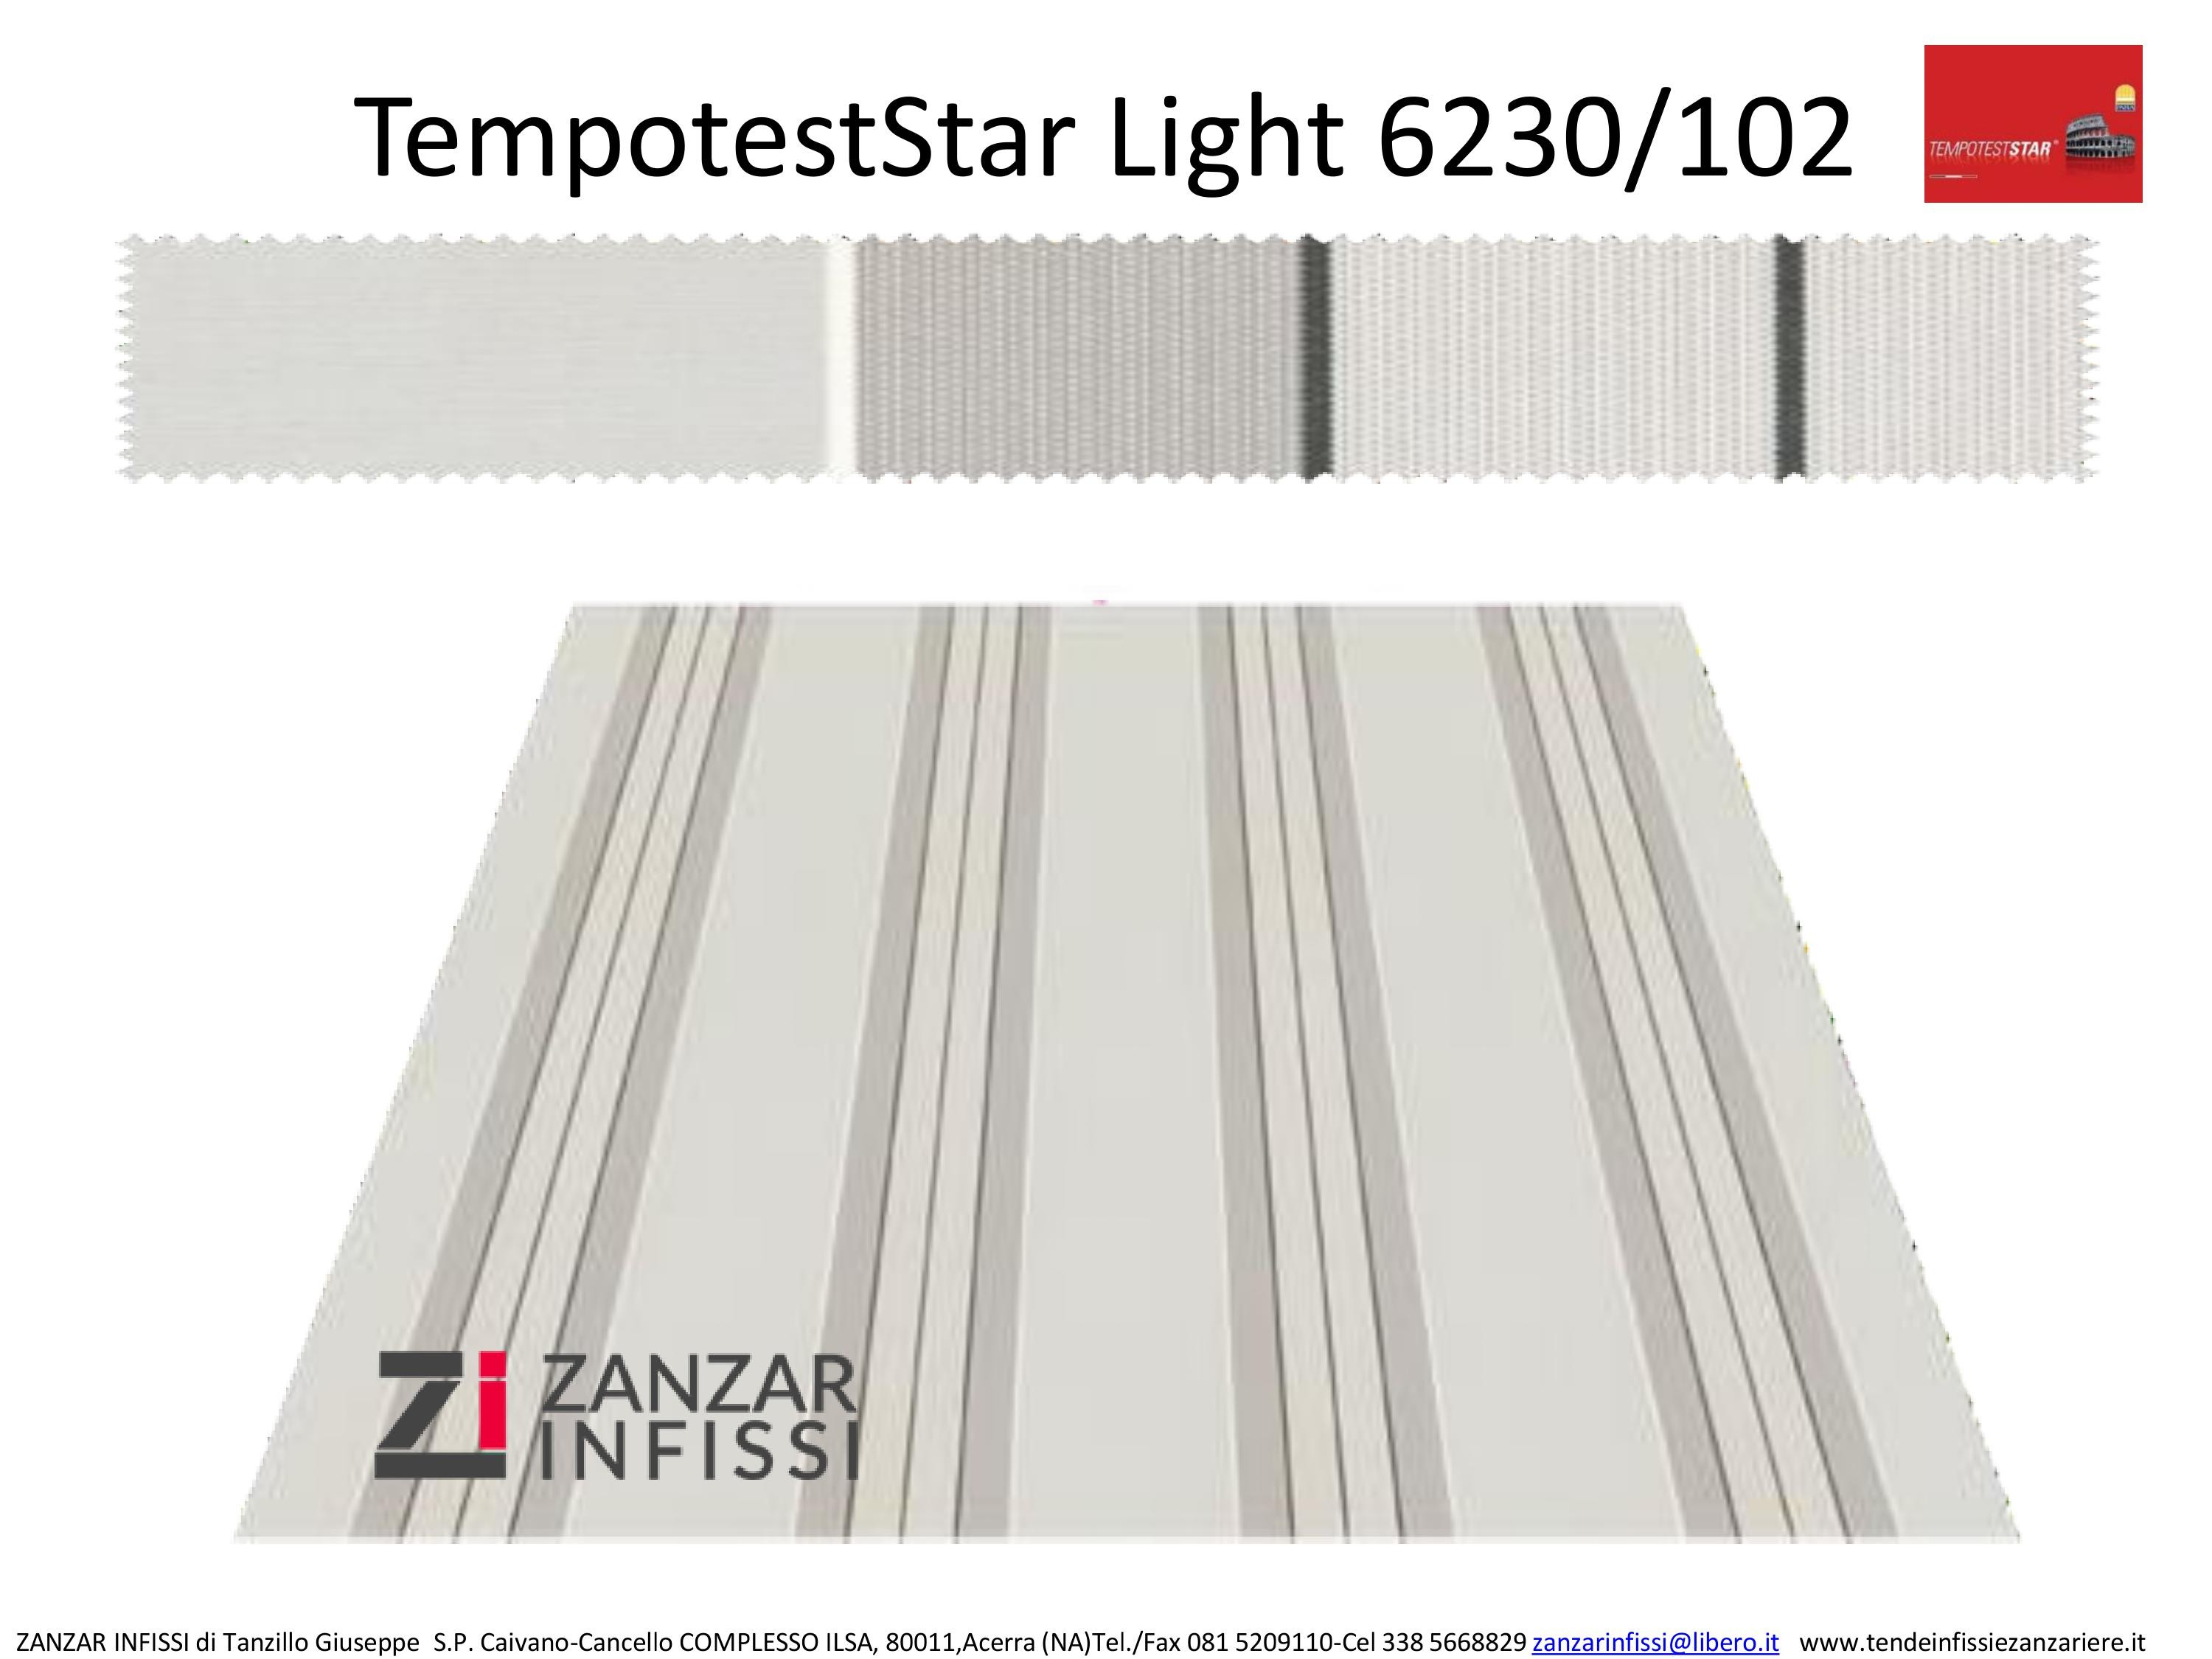 Tempotest star light 6230/102